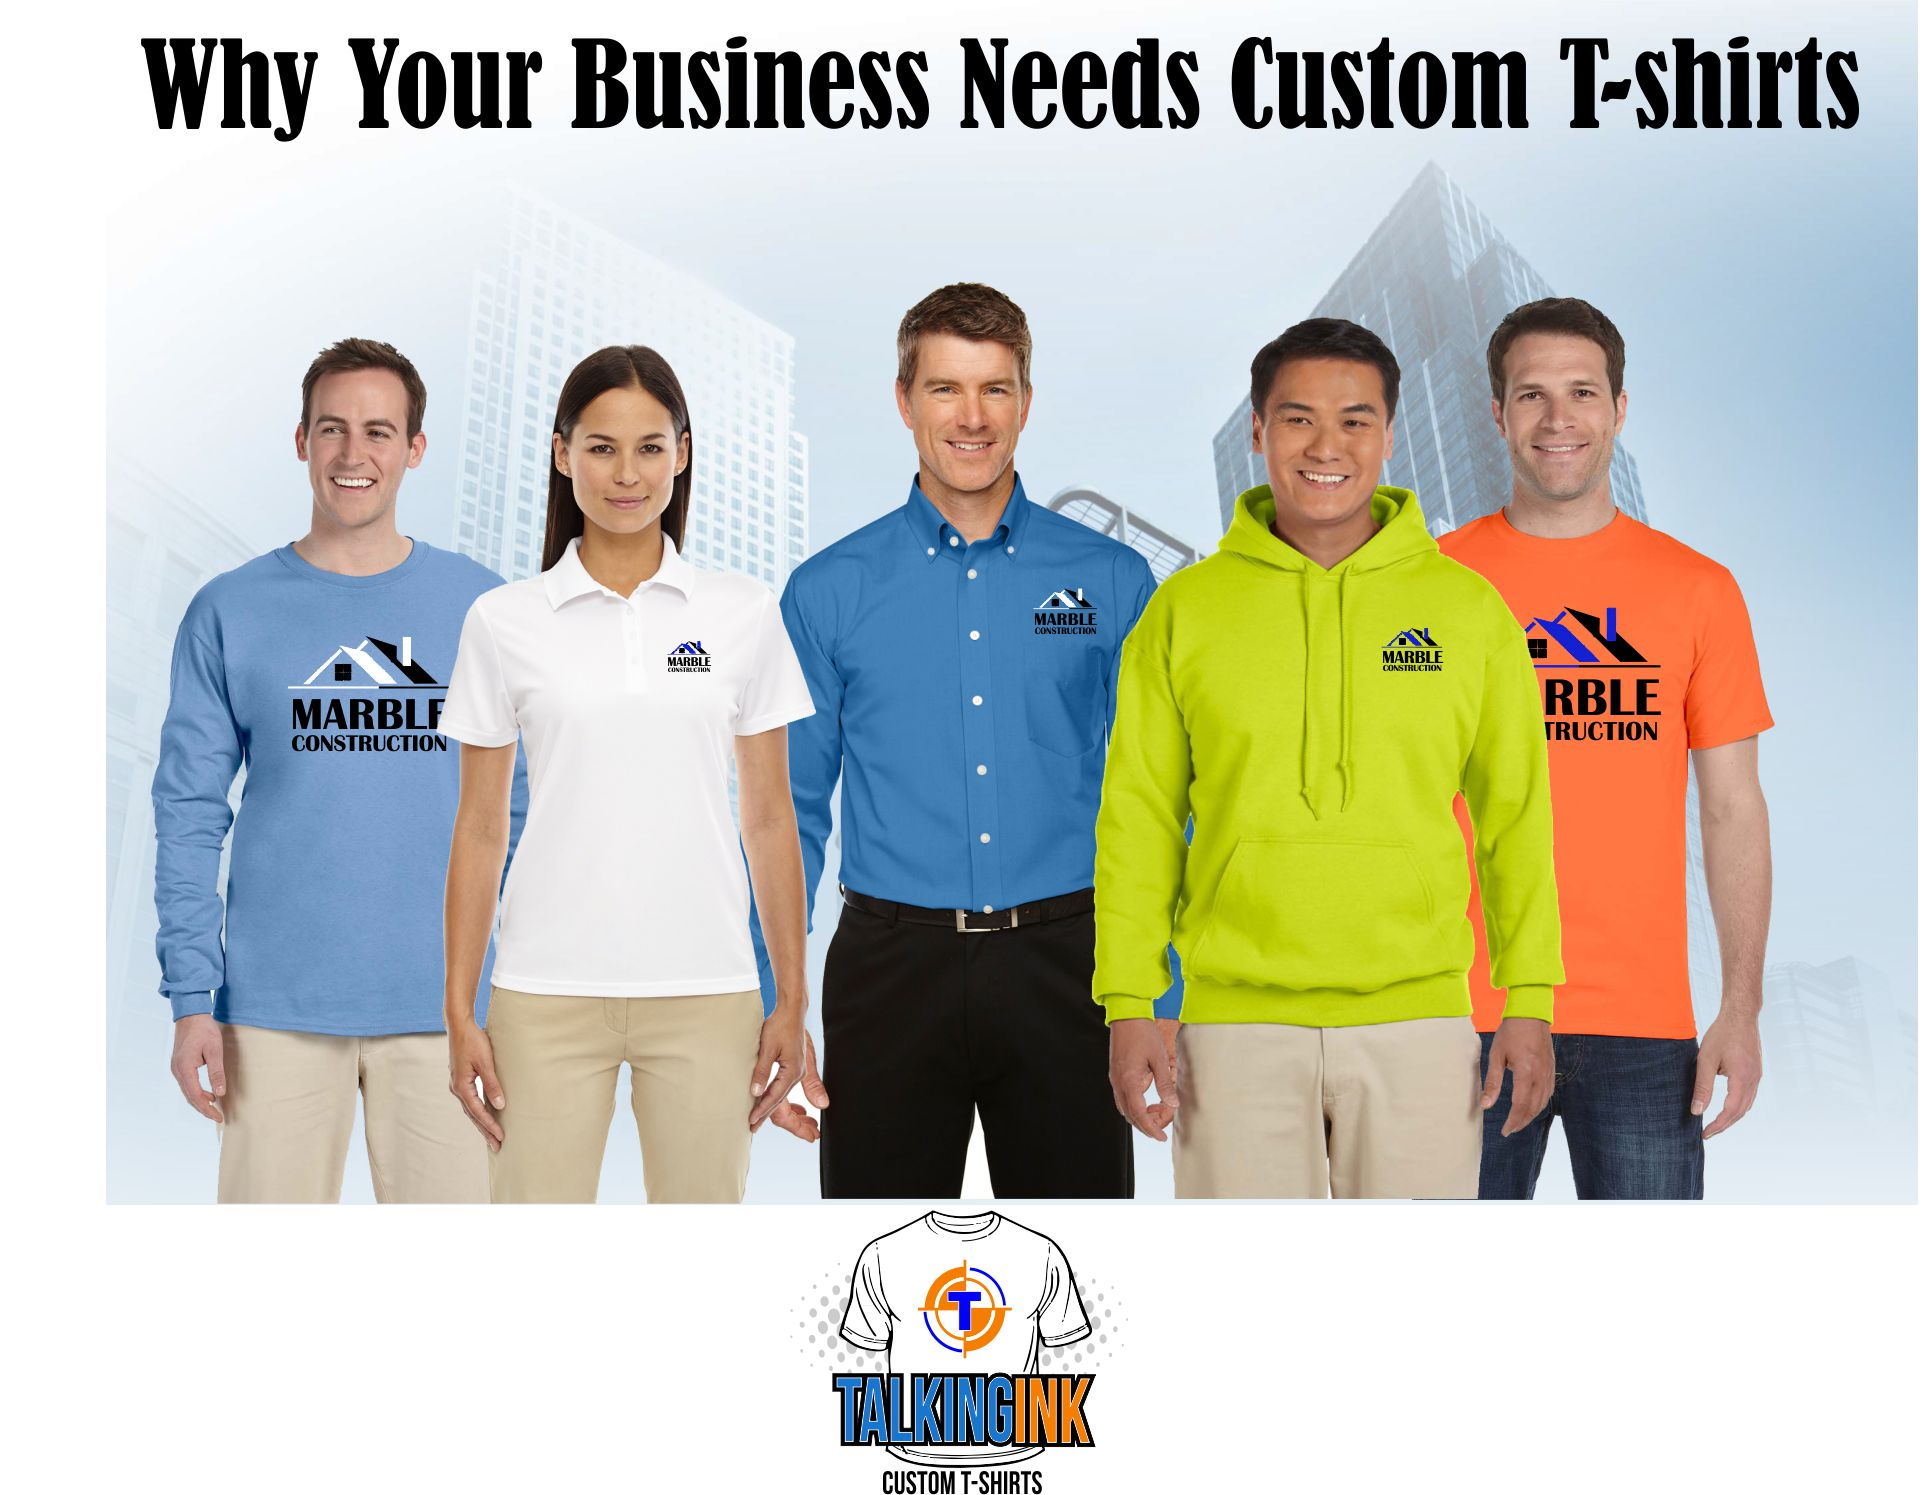 Why your business needs custom t-shirts